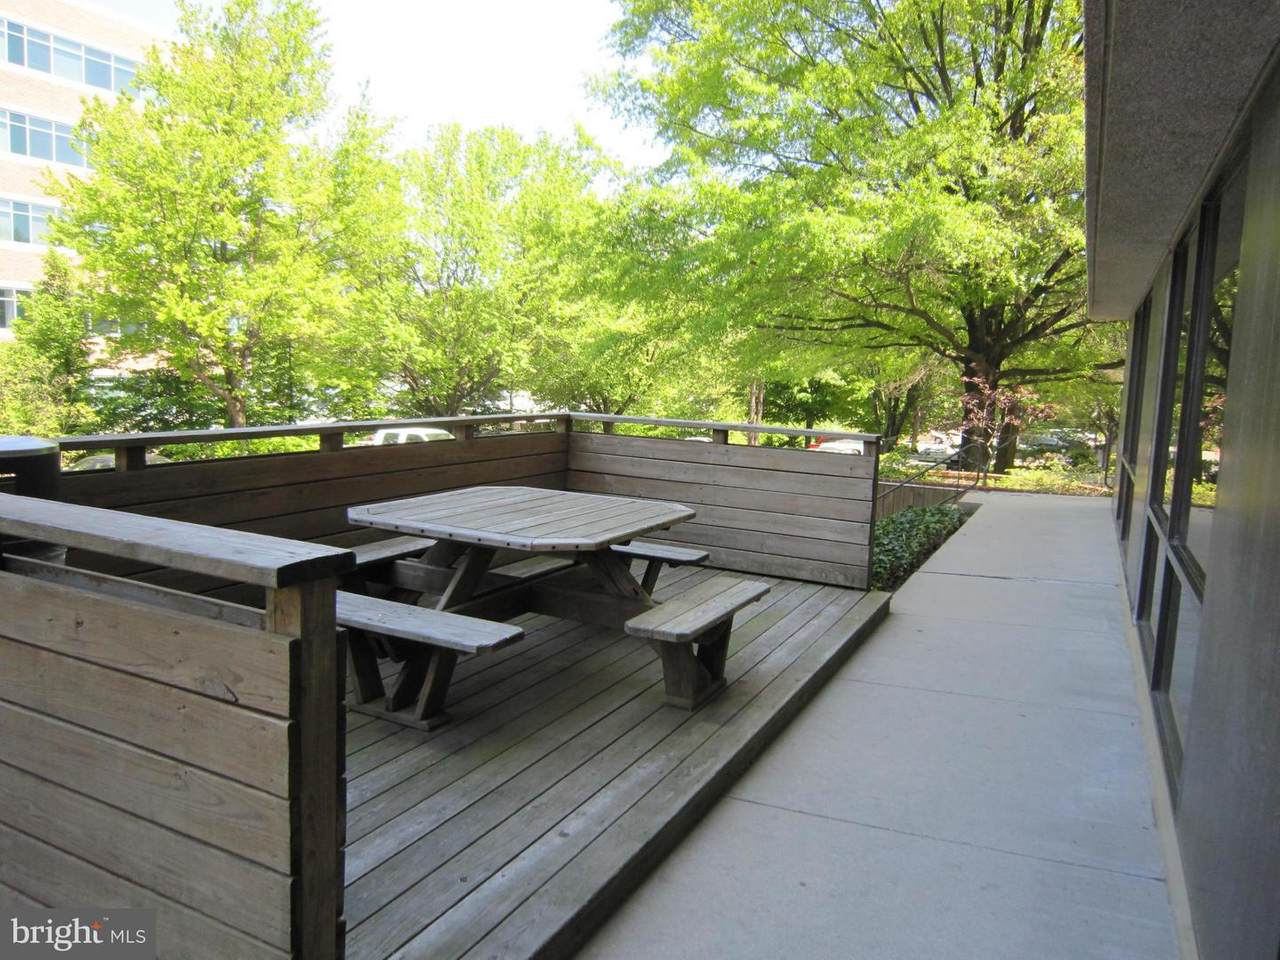 https://bt-photos.global.ssl.fastly.net/brightmls/1280_boomver_1_304246996488-2.jpg